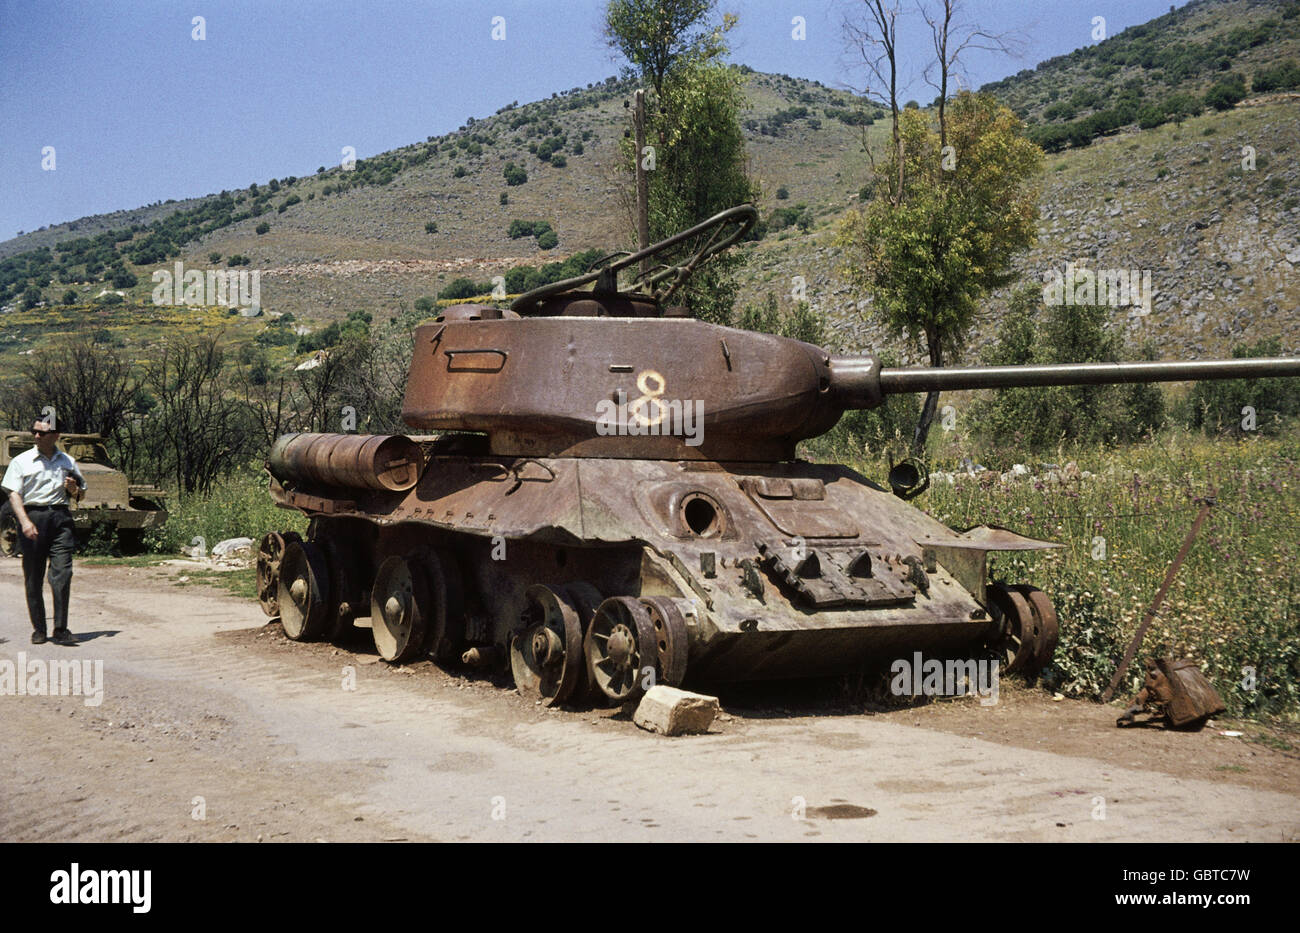 geography / travel, Syria, Golan Heights, wreck of a Syrian tank